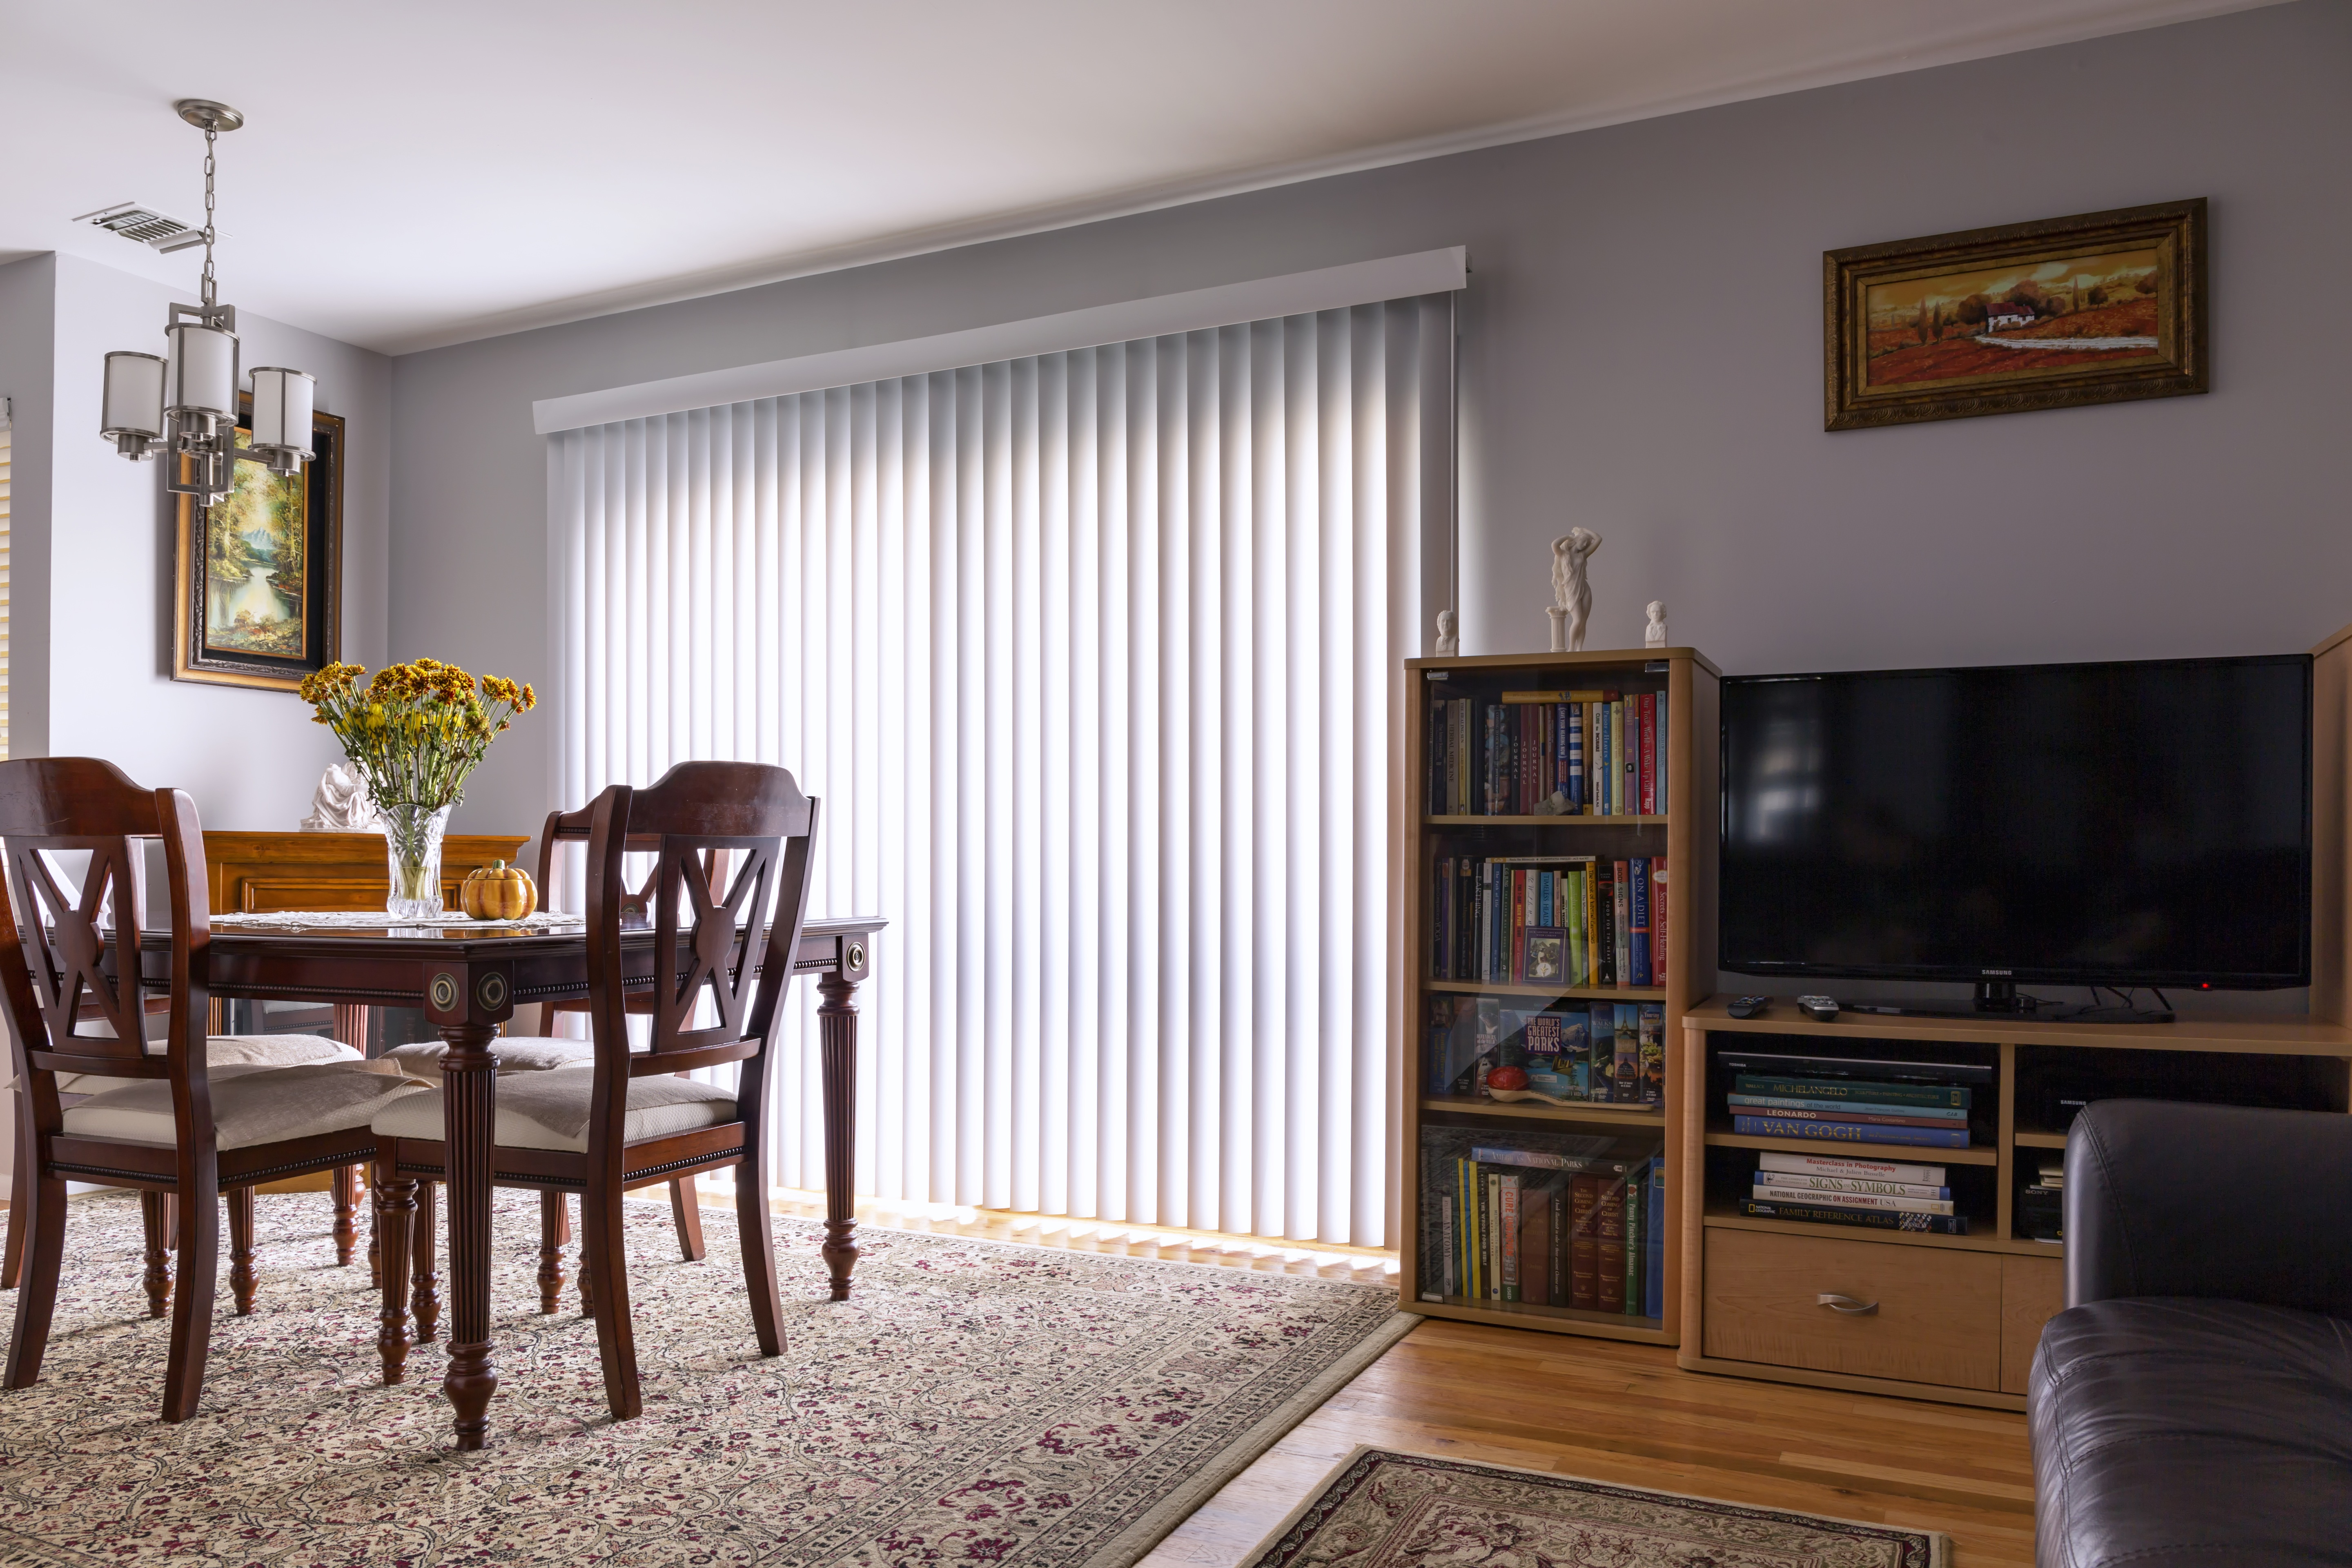 Window Treatment Ideas: How to Choose the Right Option for Your Home